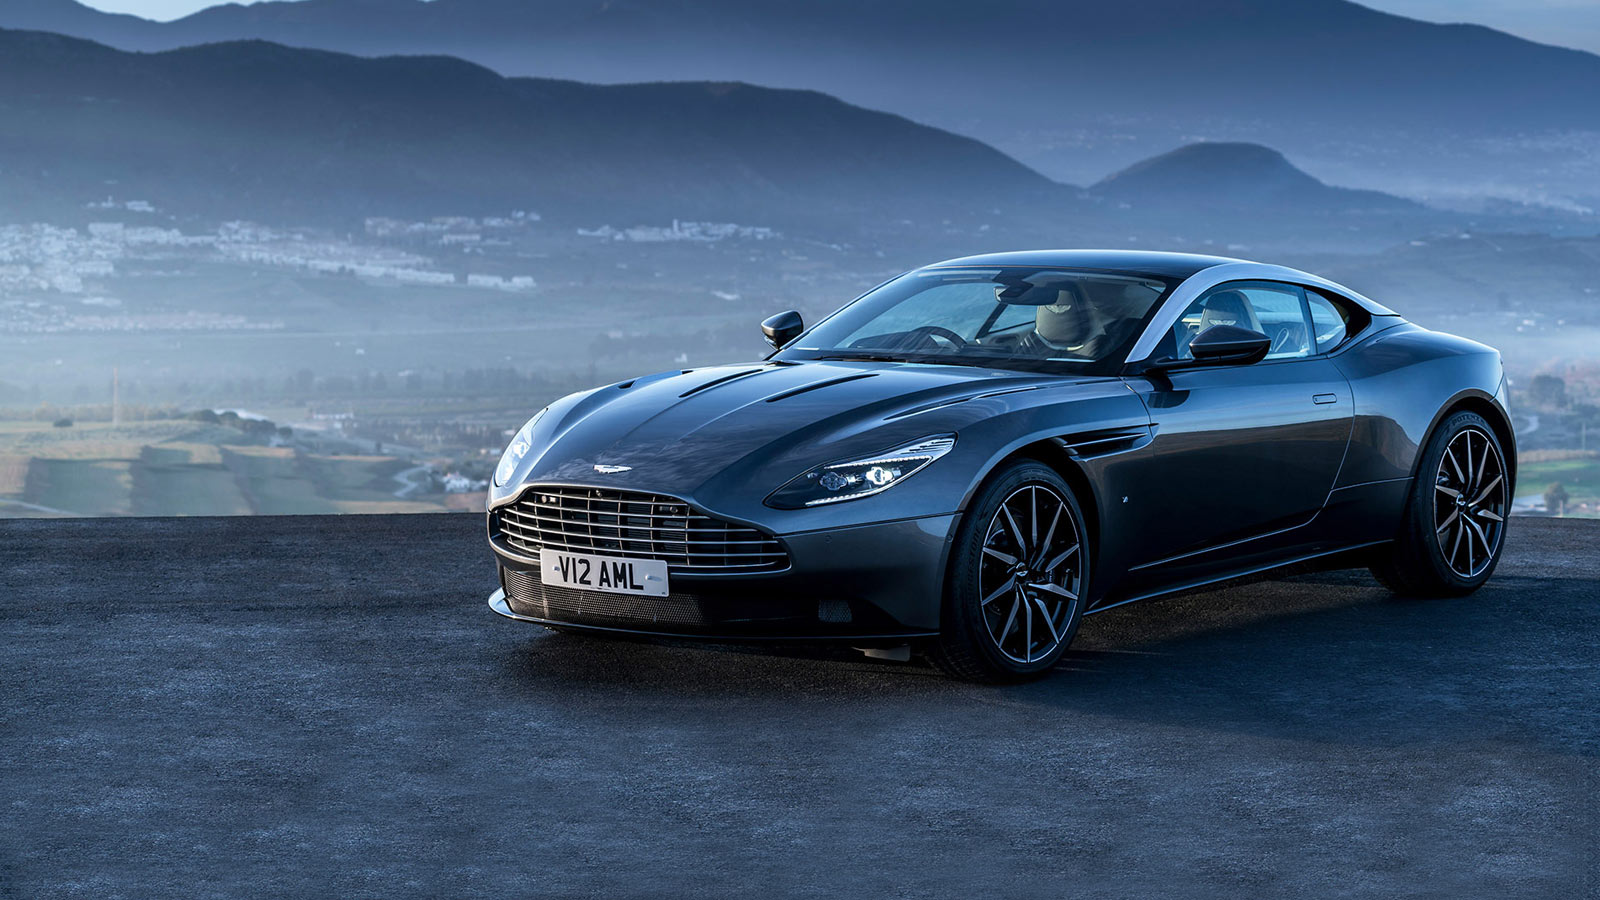 Aston Martin DB11 Cars